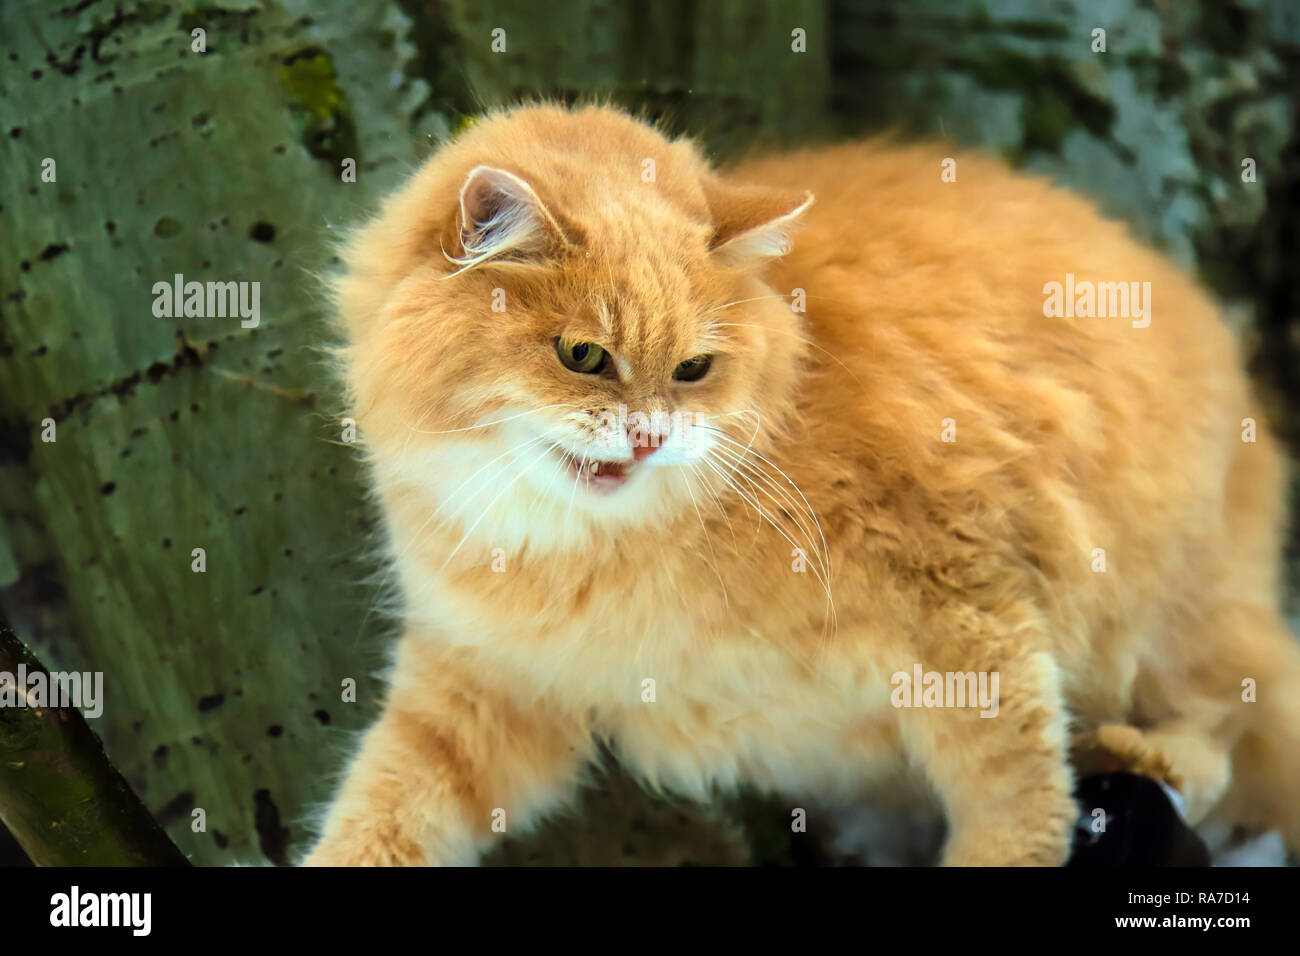 Big angry red cat with open mouth sits on a tree - Stock Image